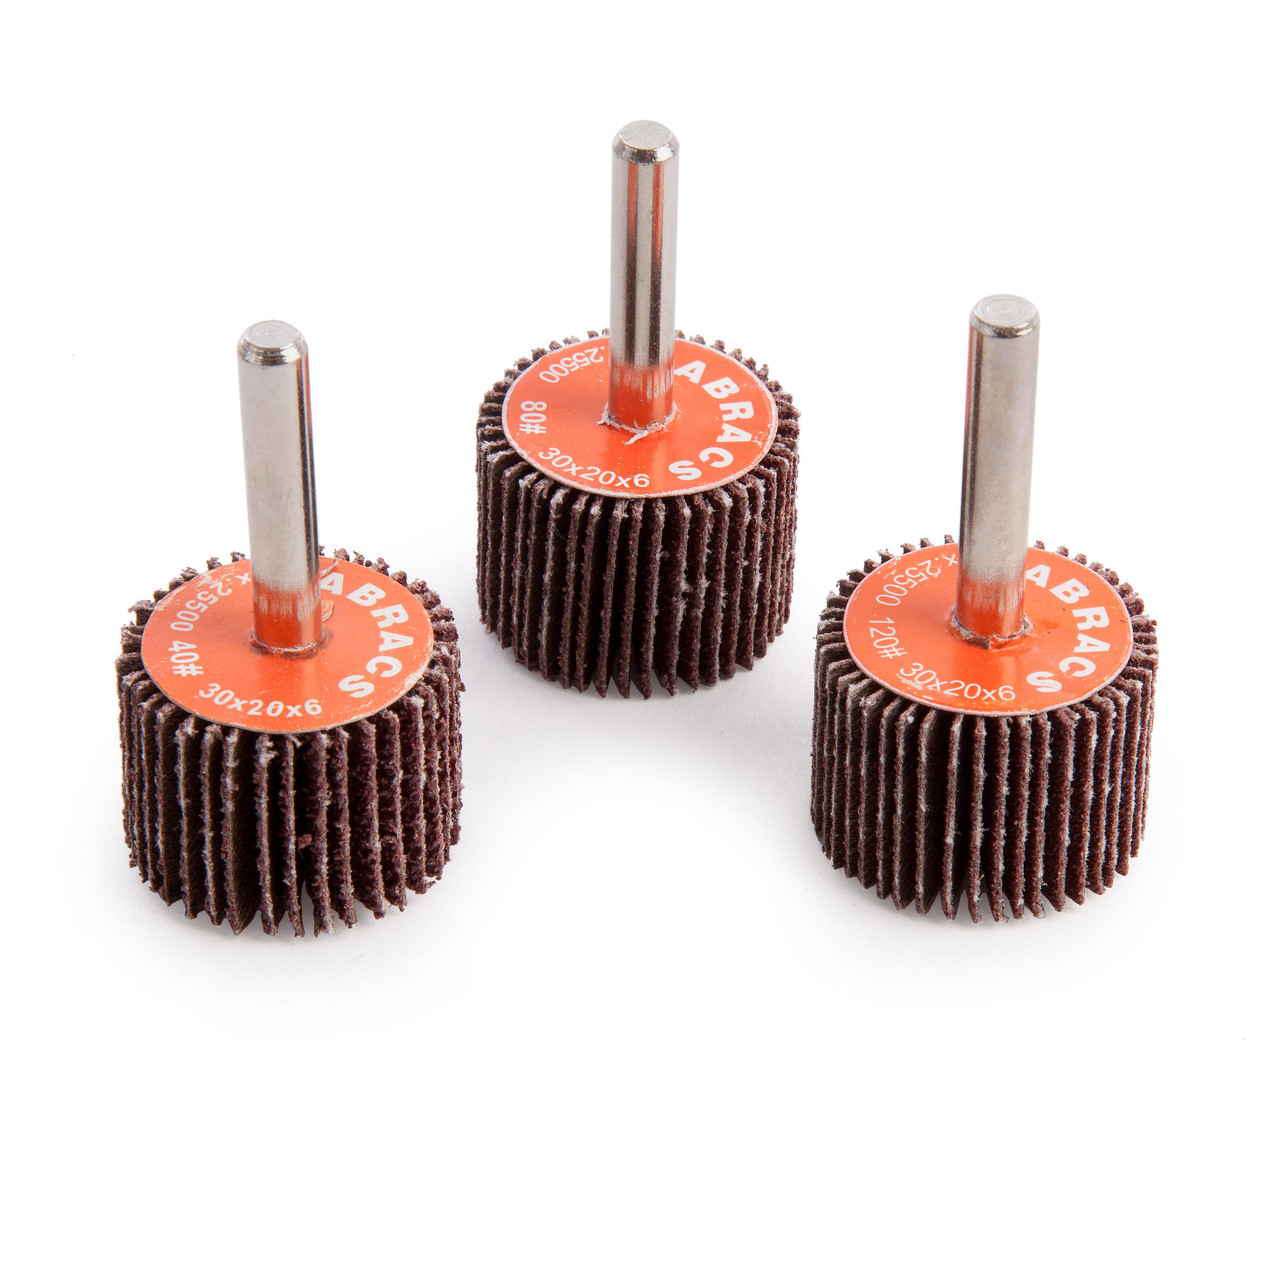 x 10 6MM SPINDLE SPINDLE MOUNTED SANDING FLAP WHEELS 25MM x 15MM x 80 GRIT